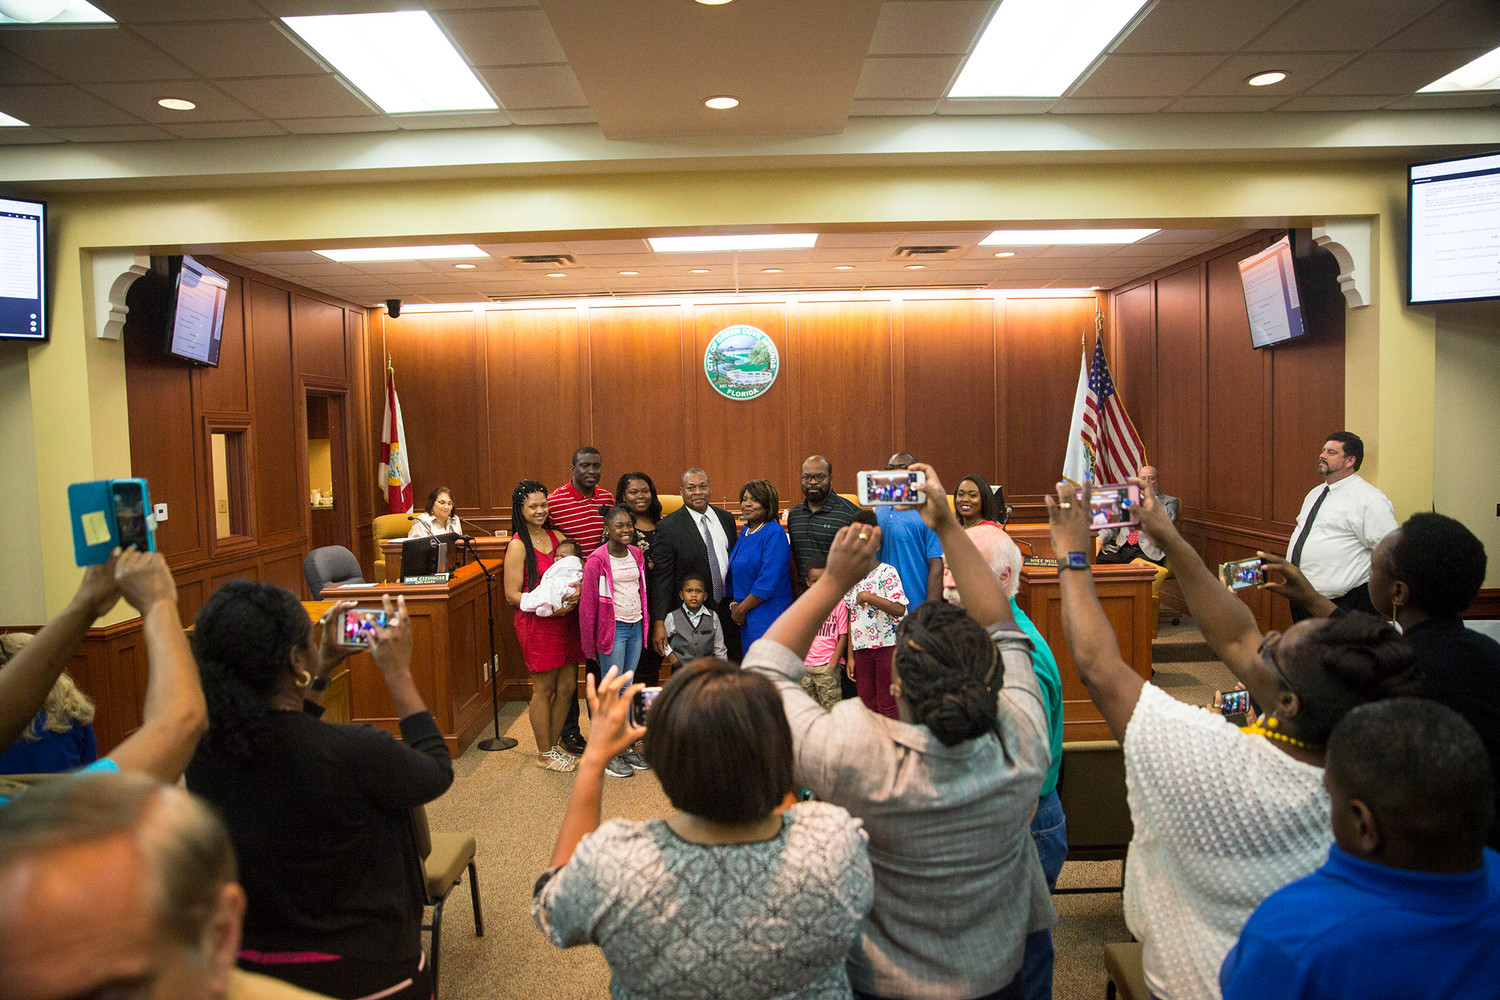 Audience members try to get a photo of newly appointed Green Cove Springs Mayor Connie Butler Tuesday evening after the council voted unanimously to put Butler in the position. Council member Steven Kelley was appointed Vice Mayor by the same vote.